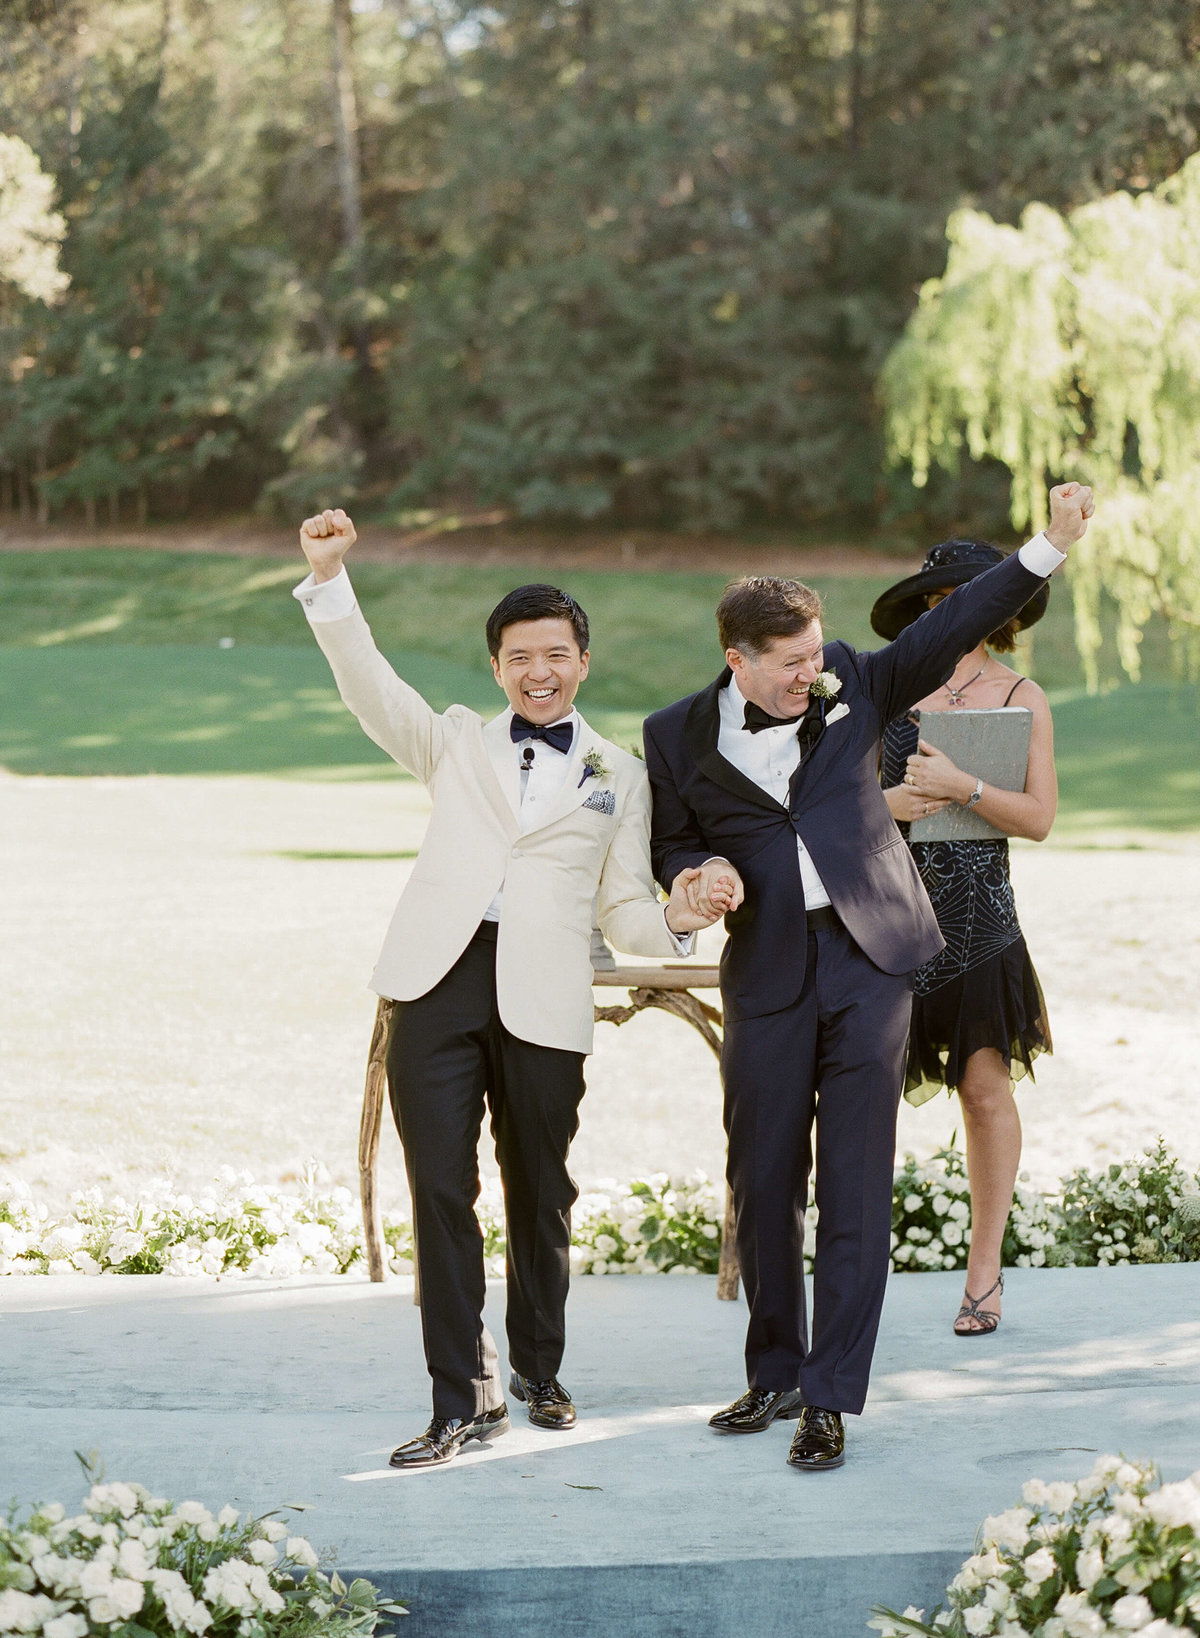 37-KTMerry-weddings-outdoor-ceremony-Meadowood-NapaValley